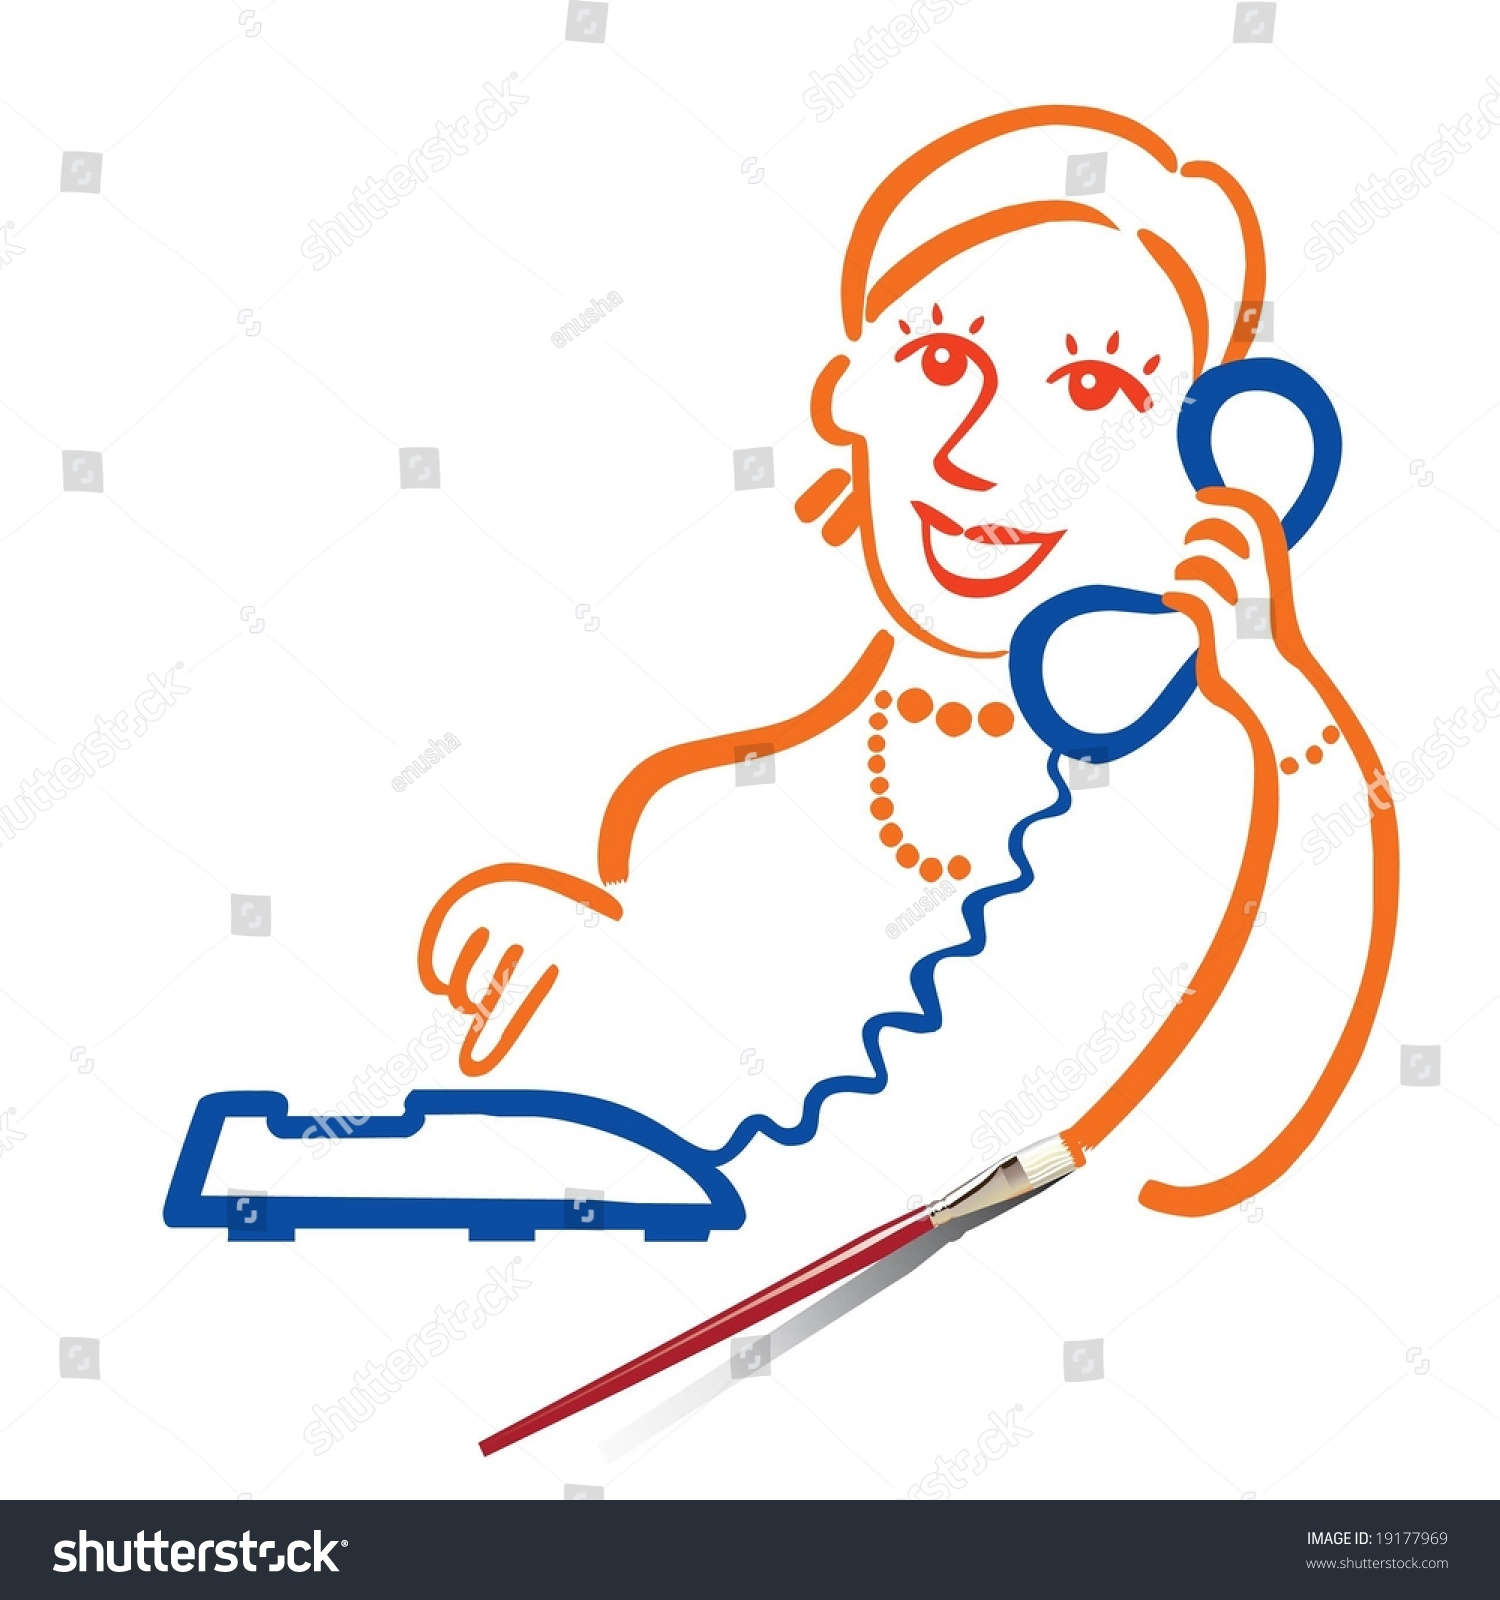 Girl On Phone. Draw Your Conversation. Stock Vector Illustration 19177969 : Shutterstock